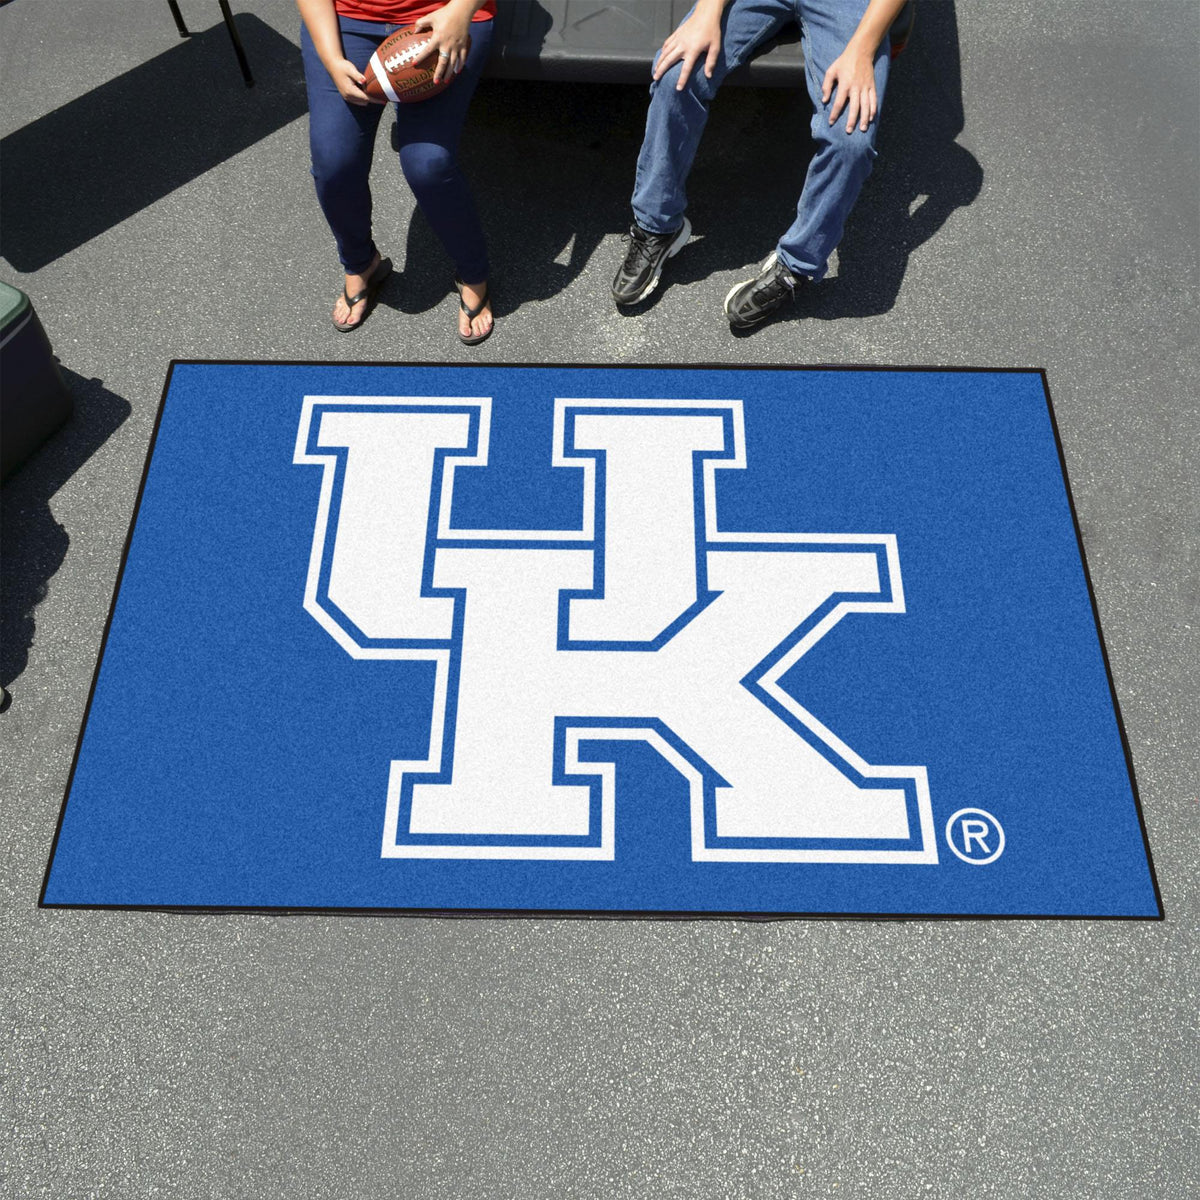 Collegiate - Ulti-Mat: A - L Collegiate Mats, Rectangular Mats, Ulti-Mat, Collegiate, Home Fan Mats Kentucky 2